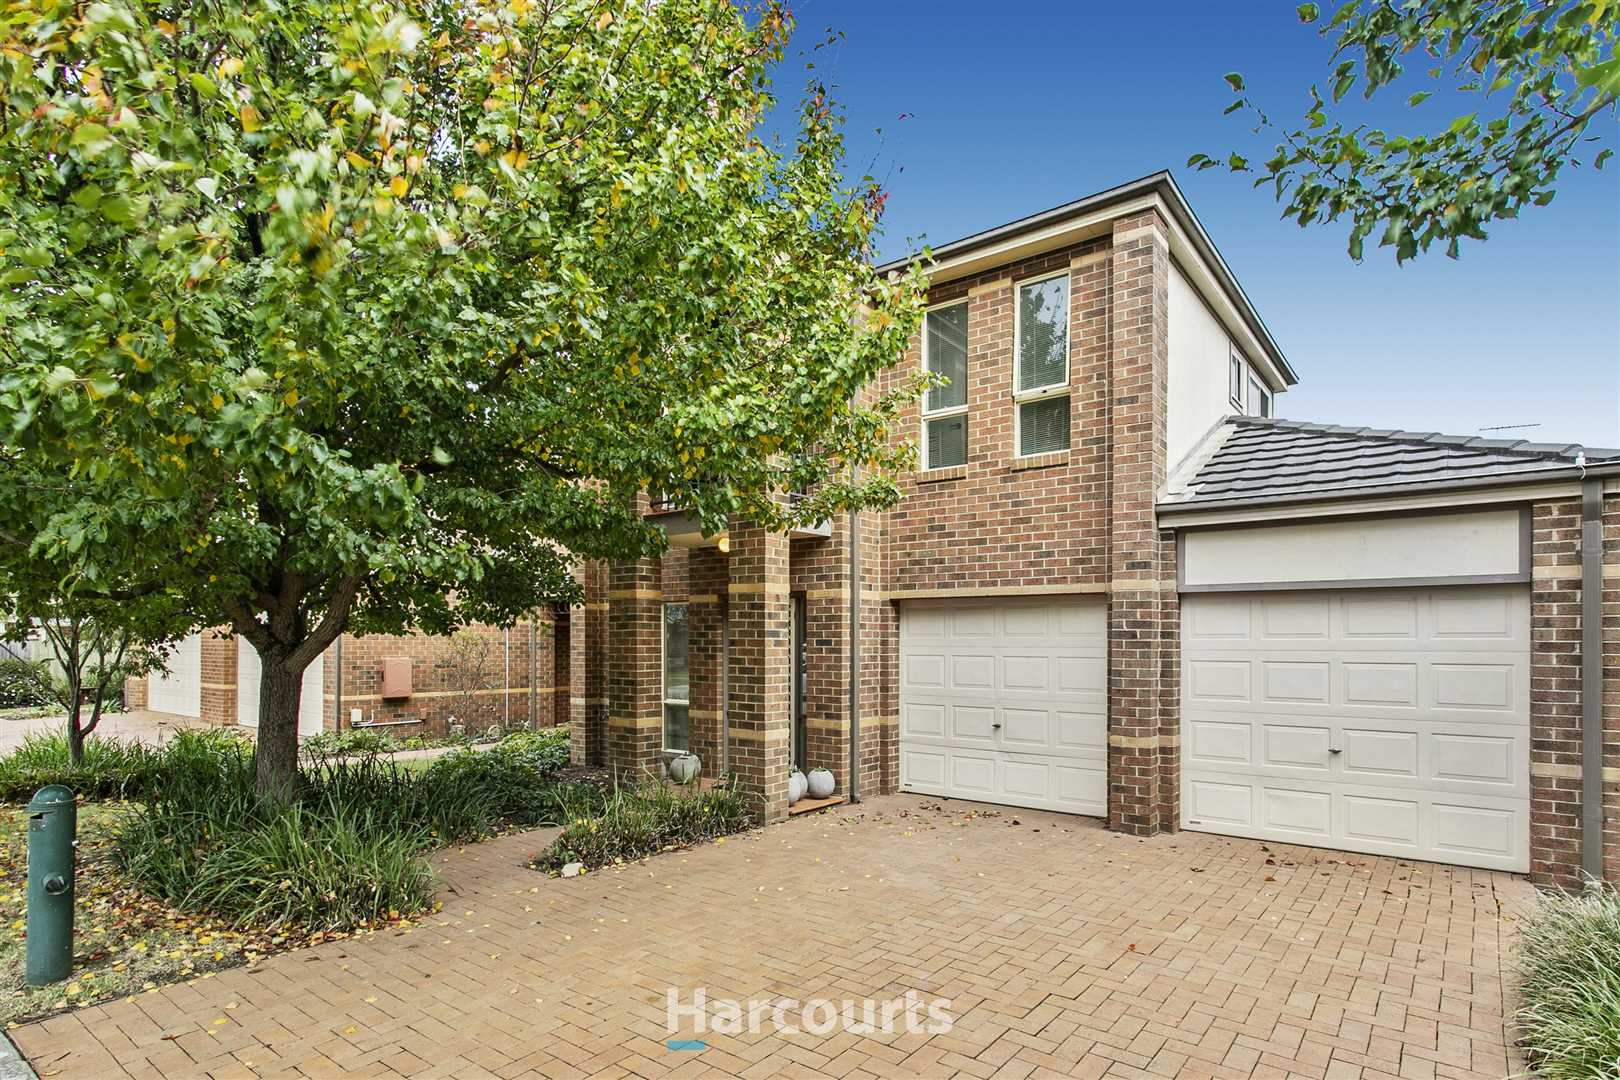 Cranbourne 19 Boronia Ave Harcourts Narre Warren South Harcourts